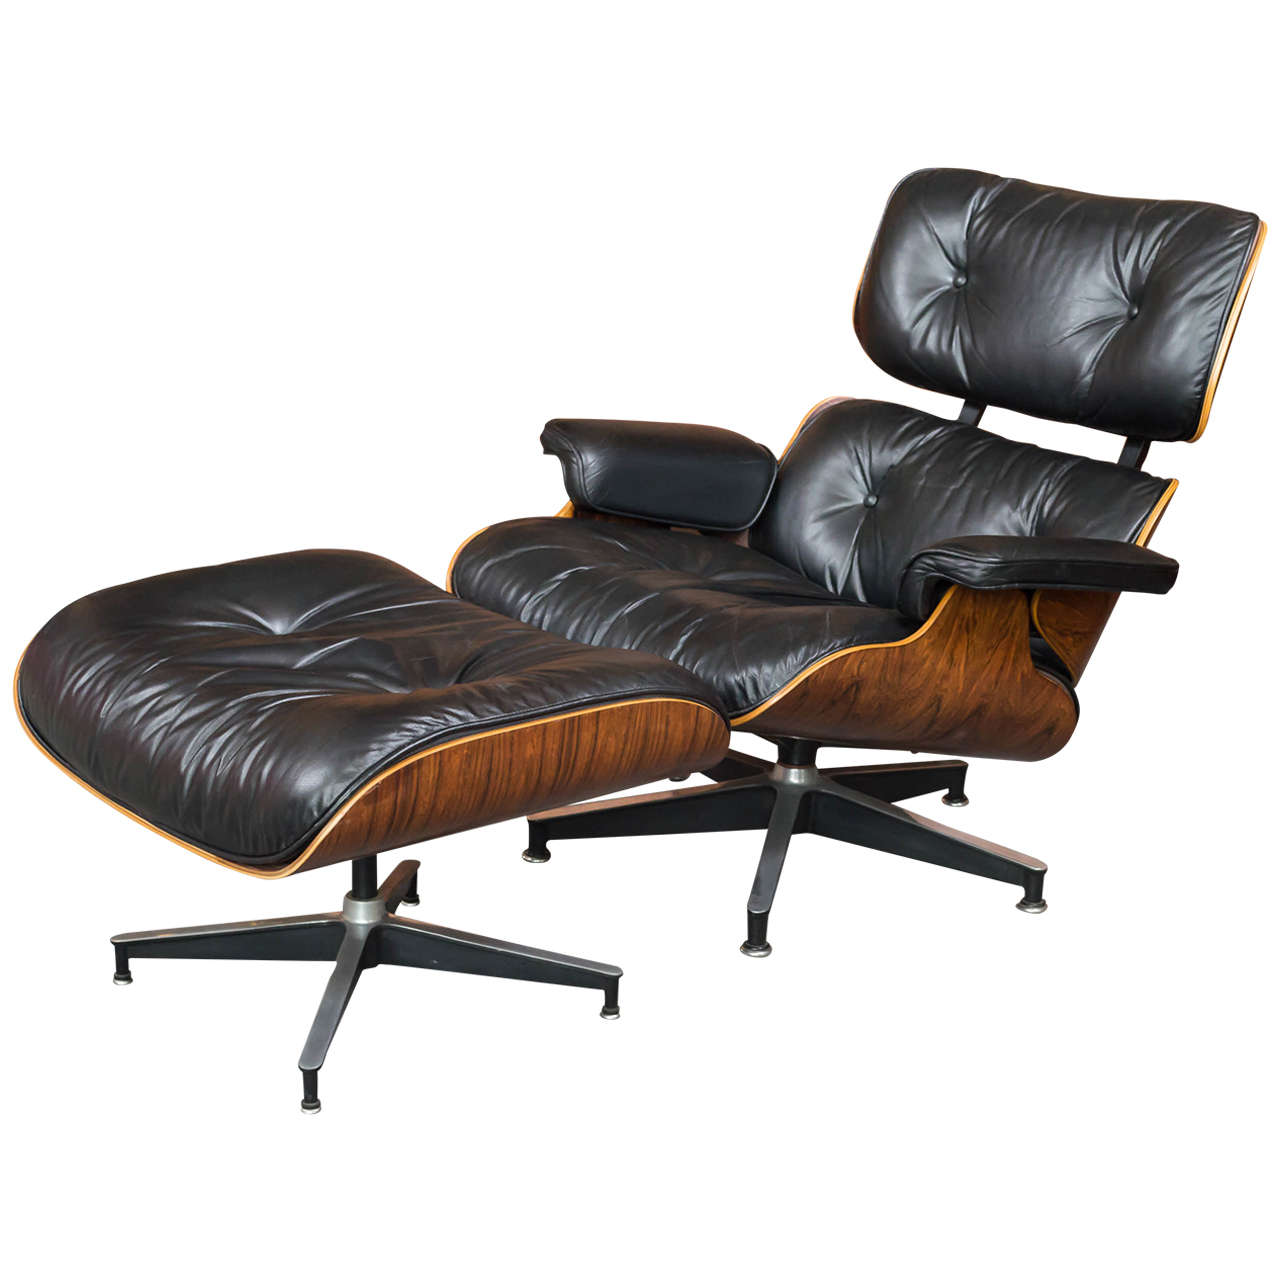 Eames Lounge Chair And Ottoman Furniture